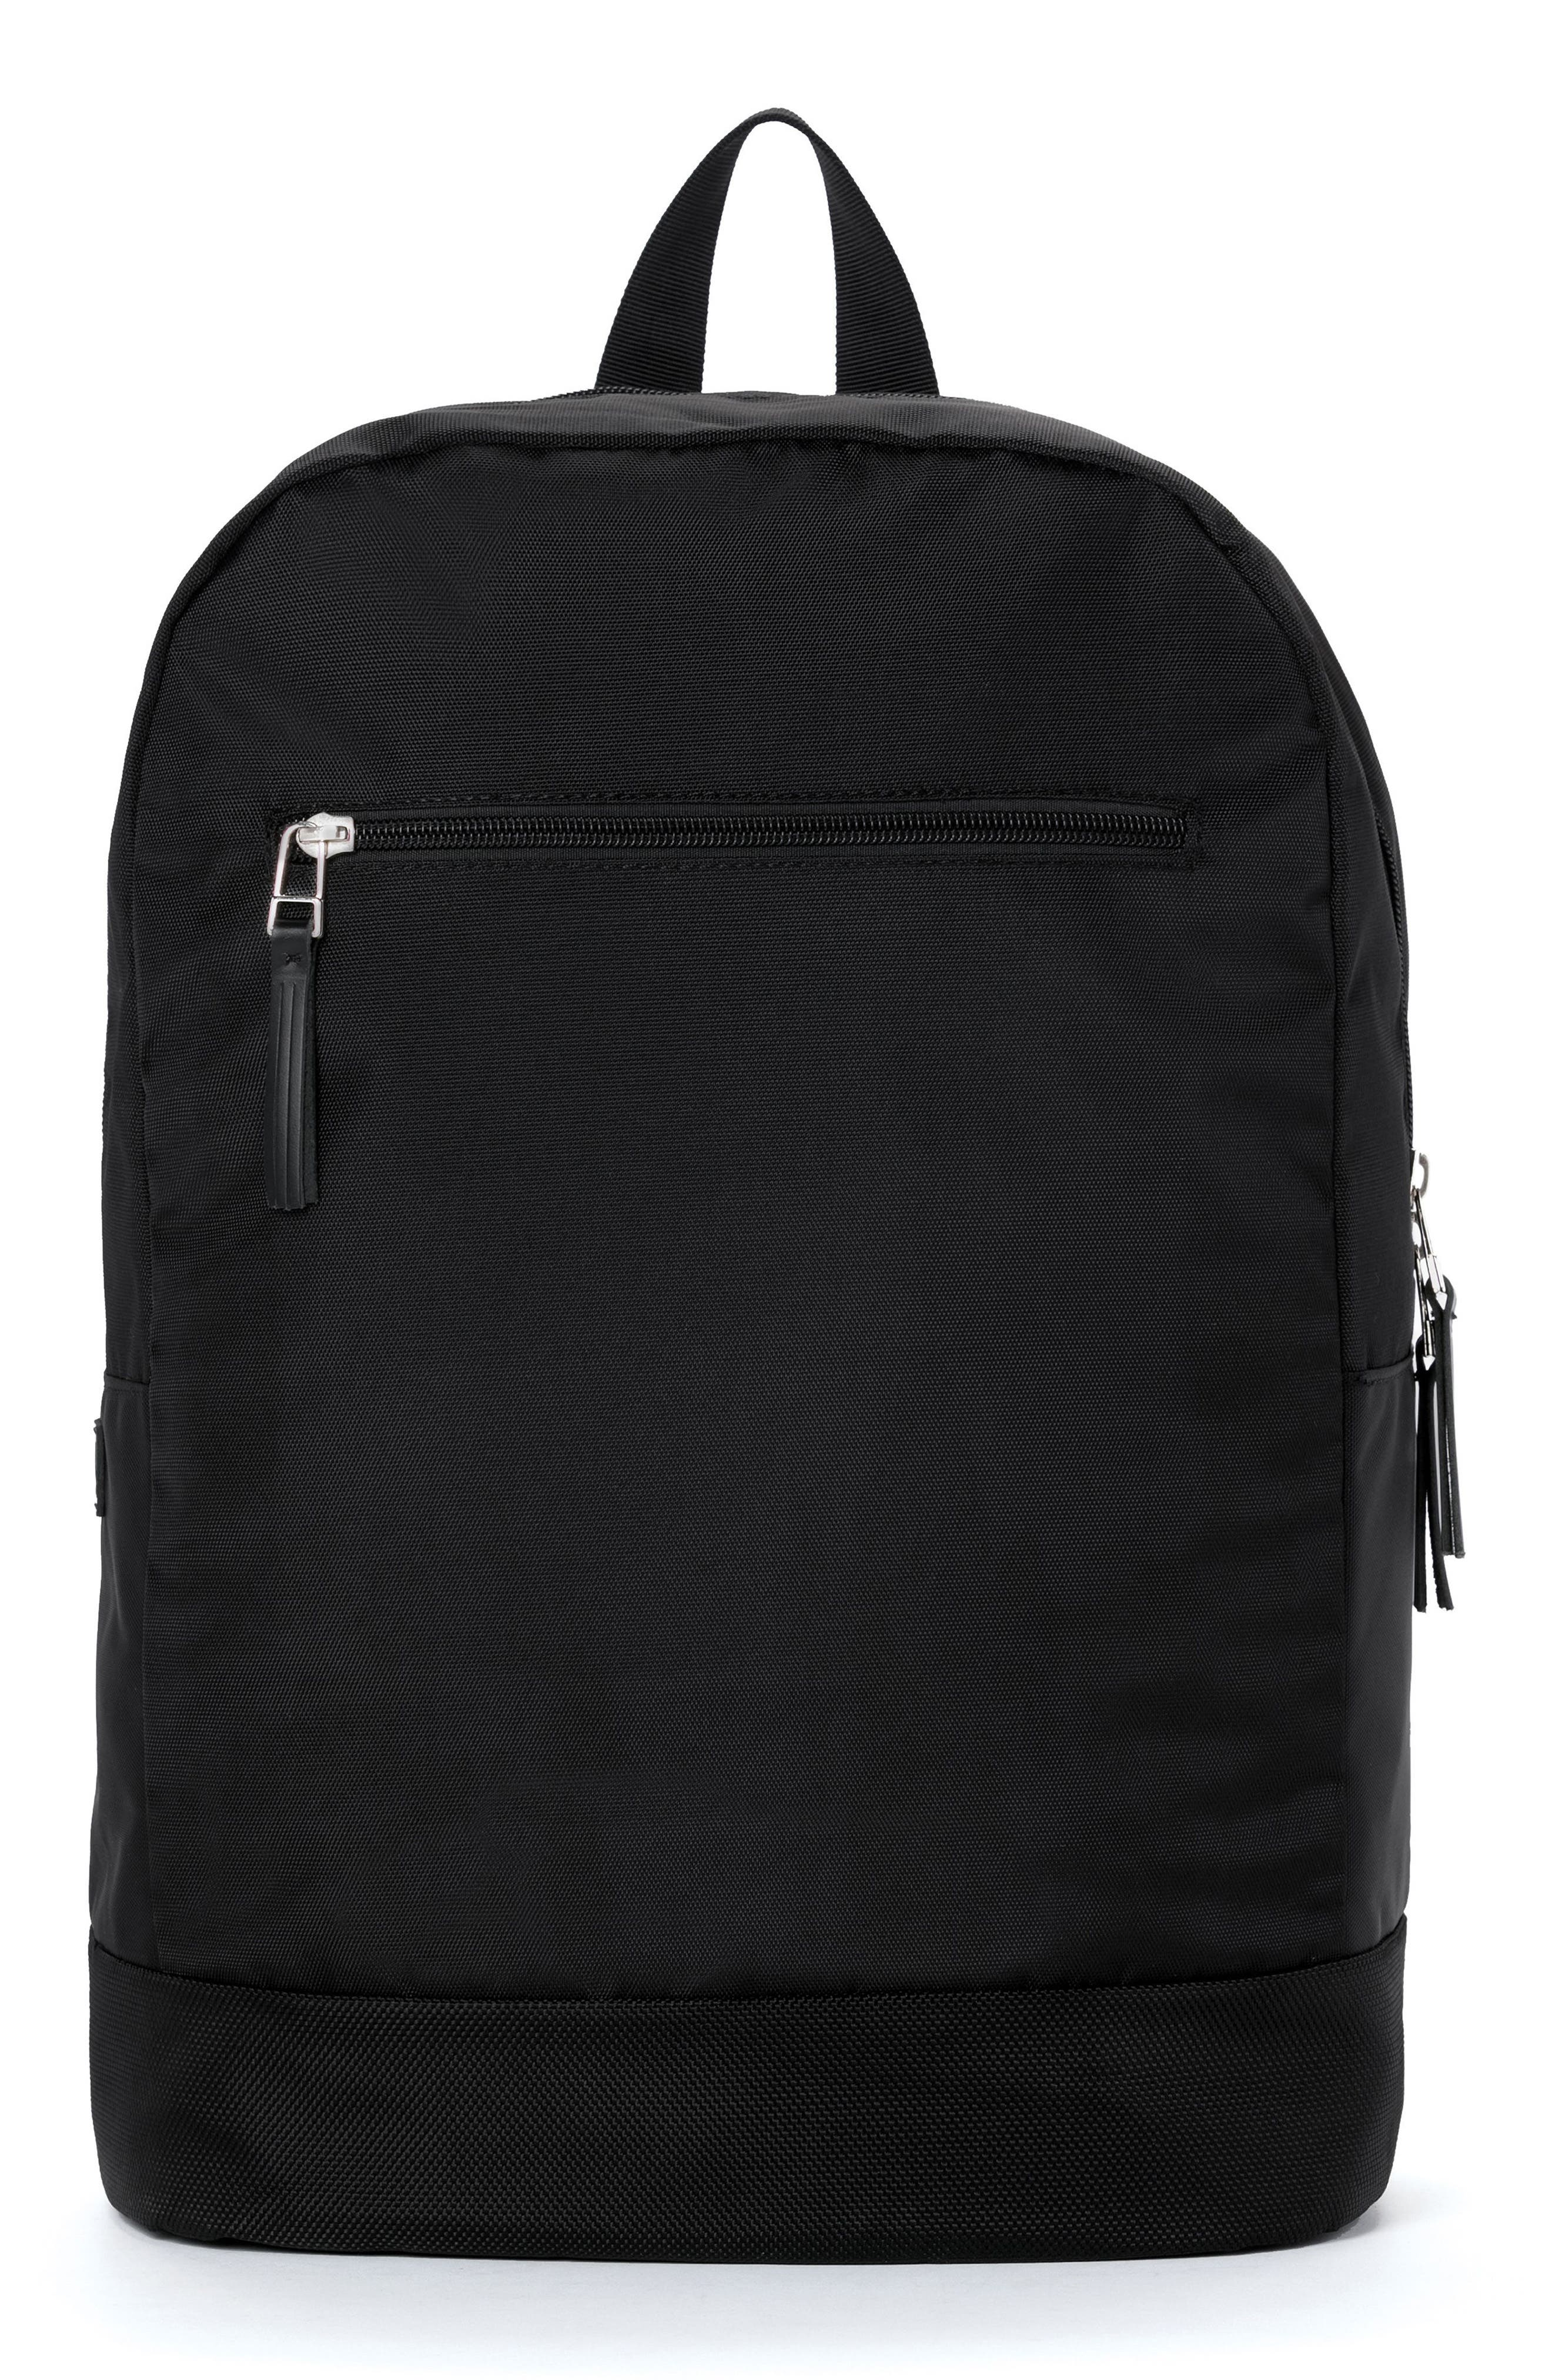 Tomcat Backpack,                             Main thumbnail 1, color,                             001